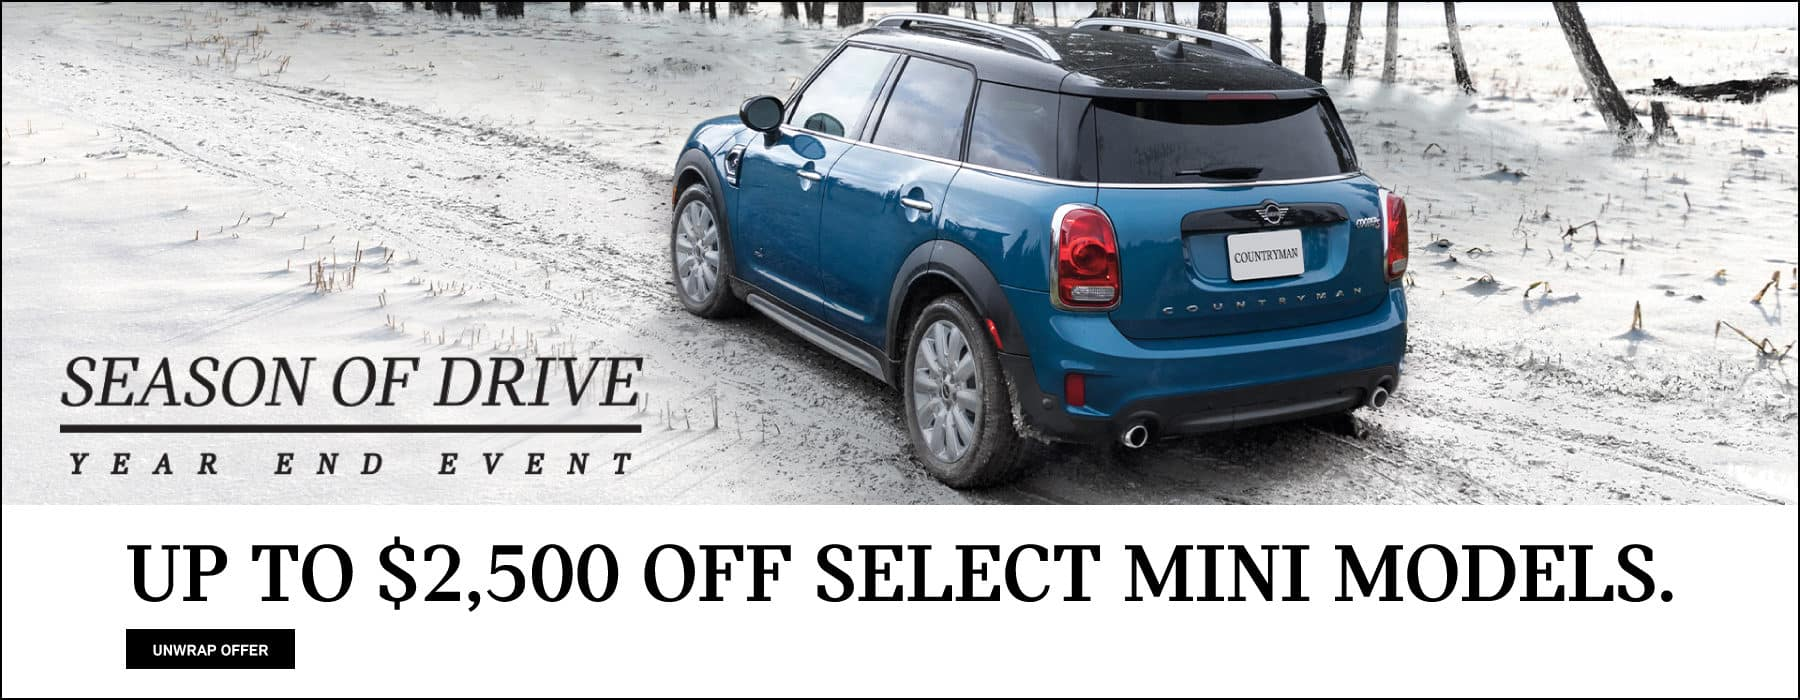 Rear side View MINI Countryman in Island Blue on snow covered road.  Season of Drive Year End Event. Up to $2,500 off select MINI models at participating MINI Dealers, excluding Oxford Edition and Plug-in Hybrid models. Must take delivery by 1/2/2020.